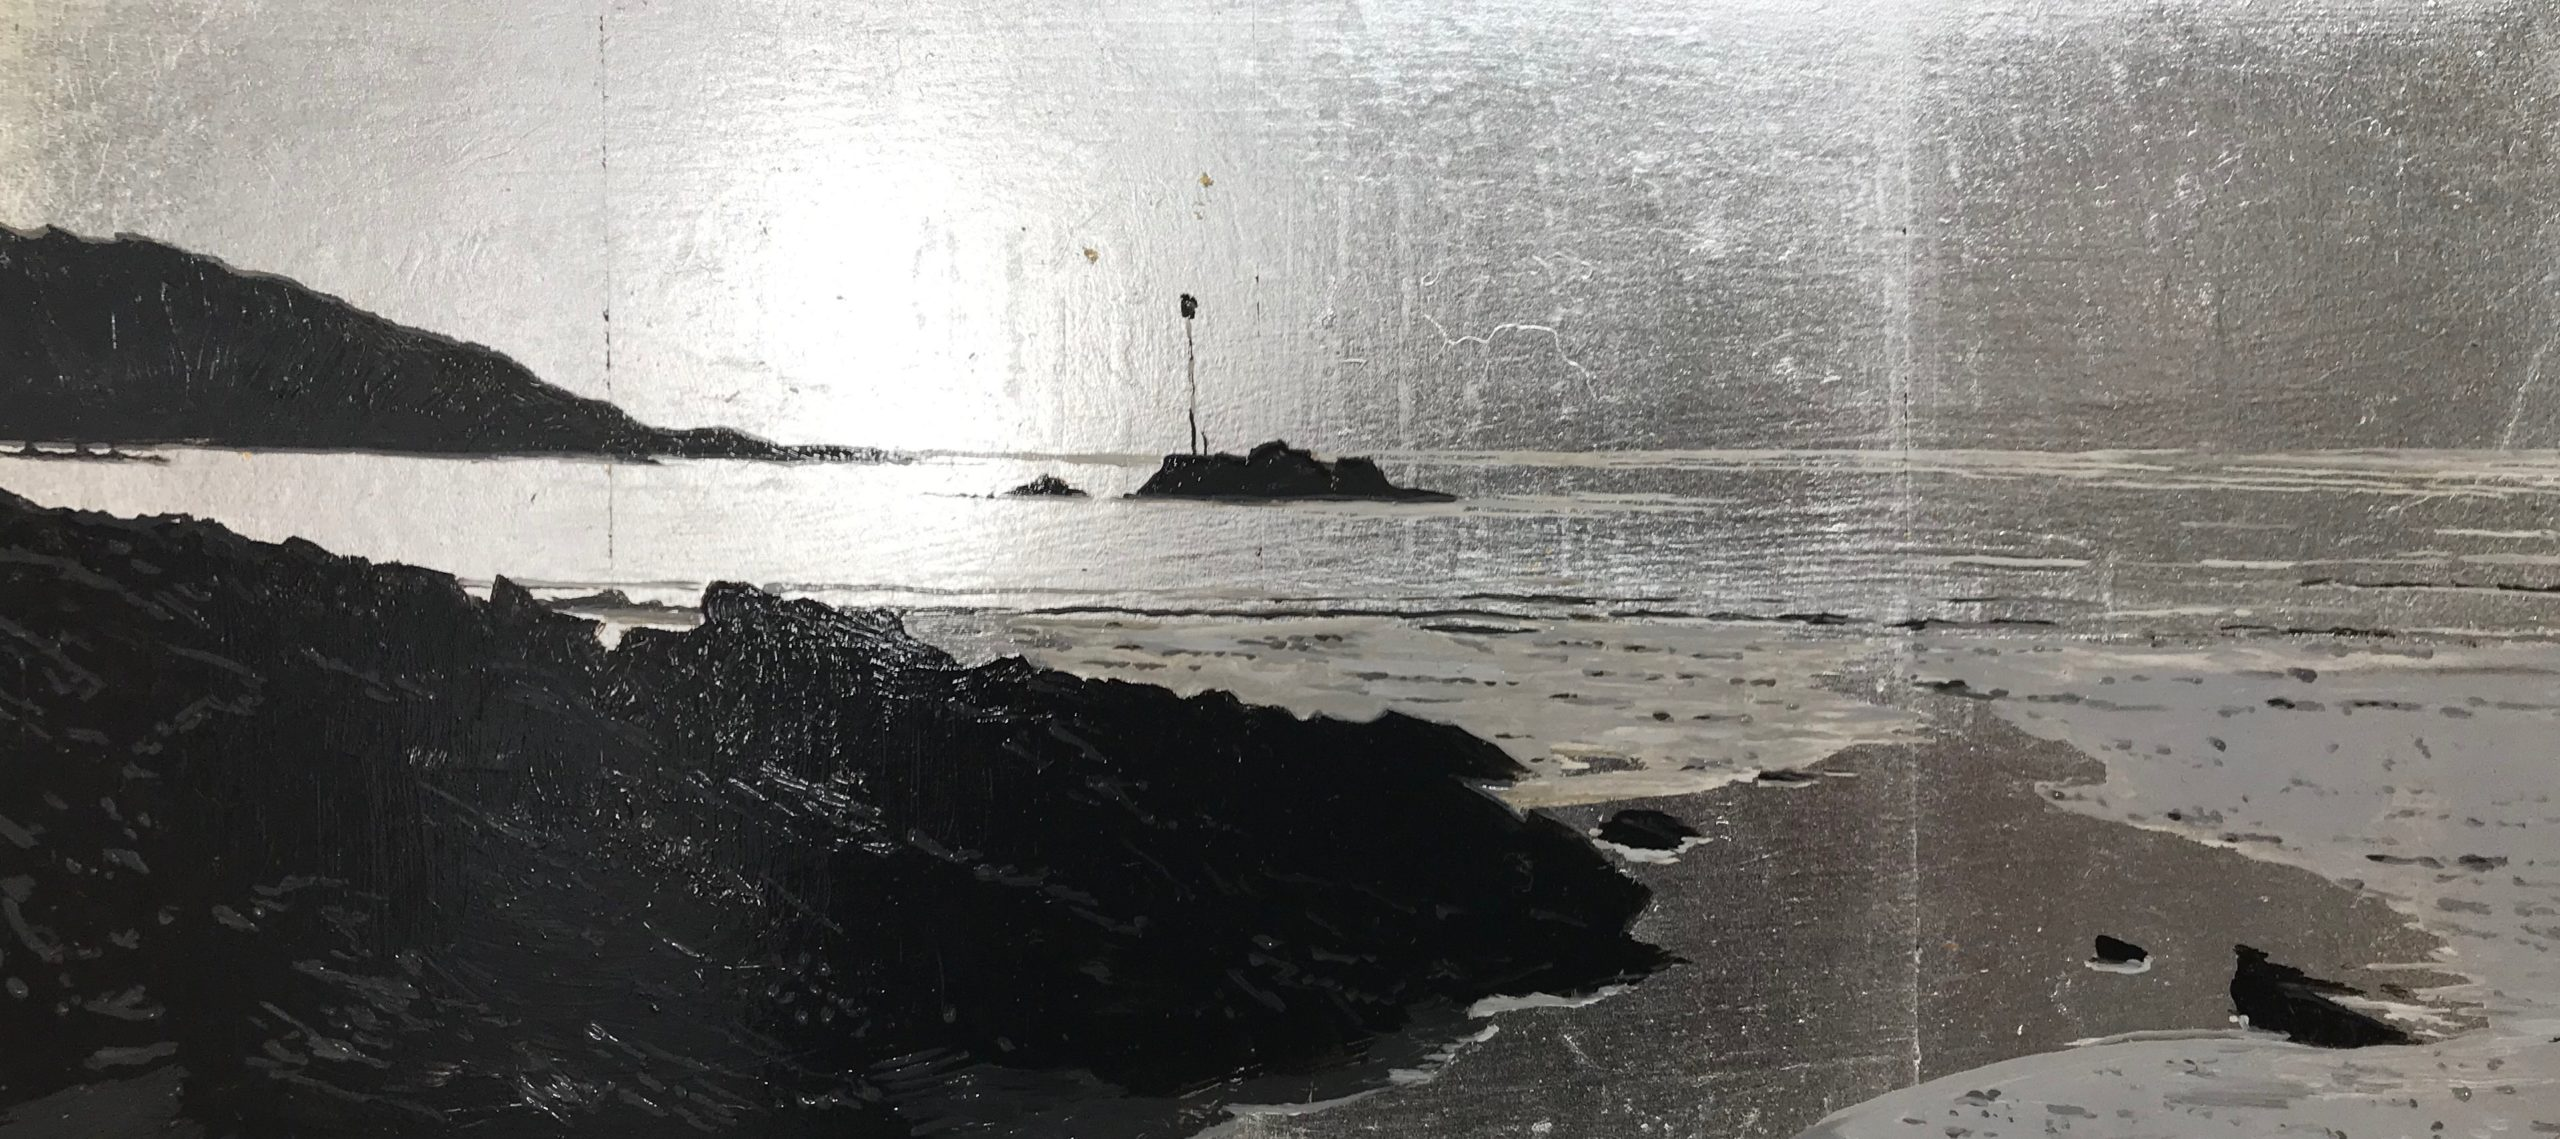 <br><em>North sands Salcombe, silver light</em>, 2020<br>Greg Ramsden<br>Oil on Silver leaf, 19x39cm